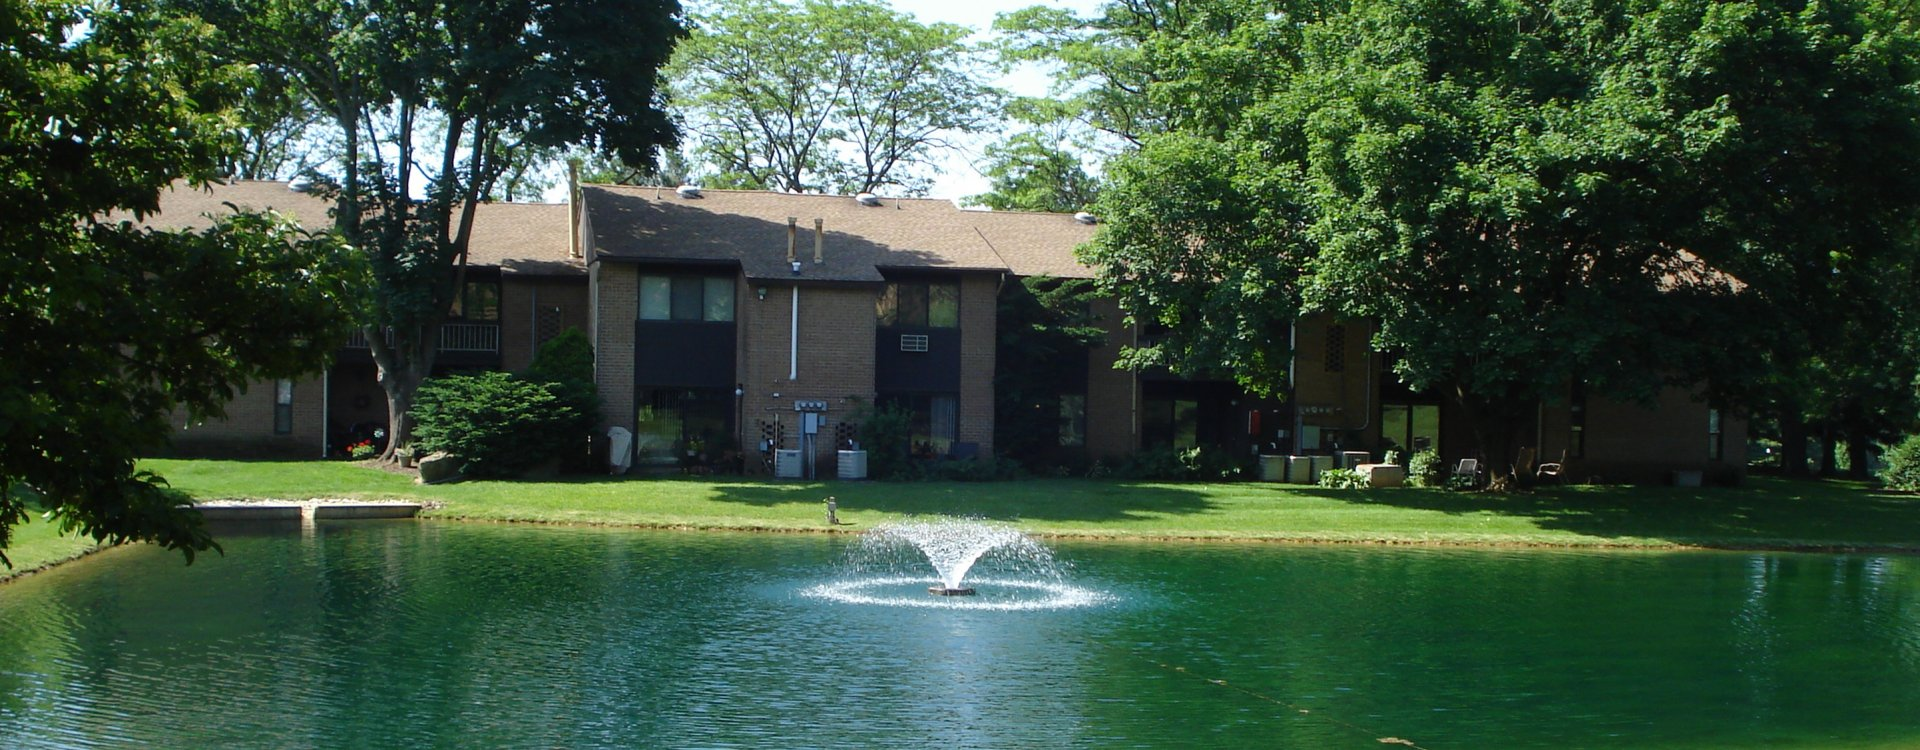 Apartments in allentown pa madison at the lakes - 3 bedroom apartments allentown pa ...